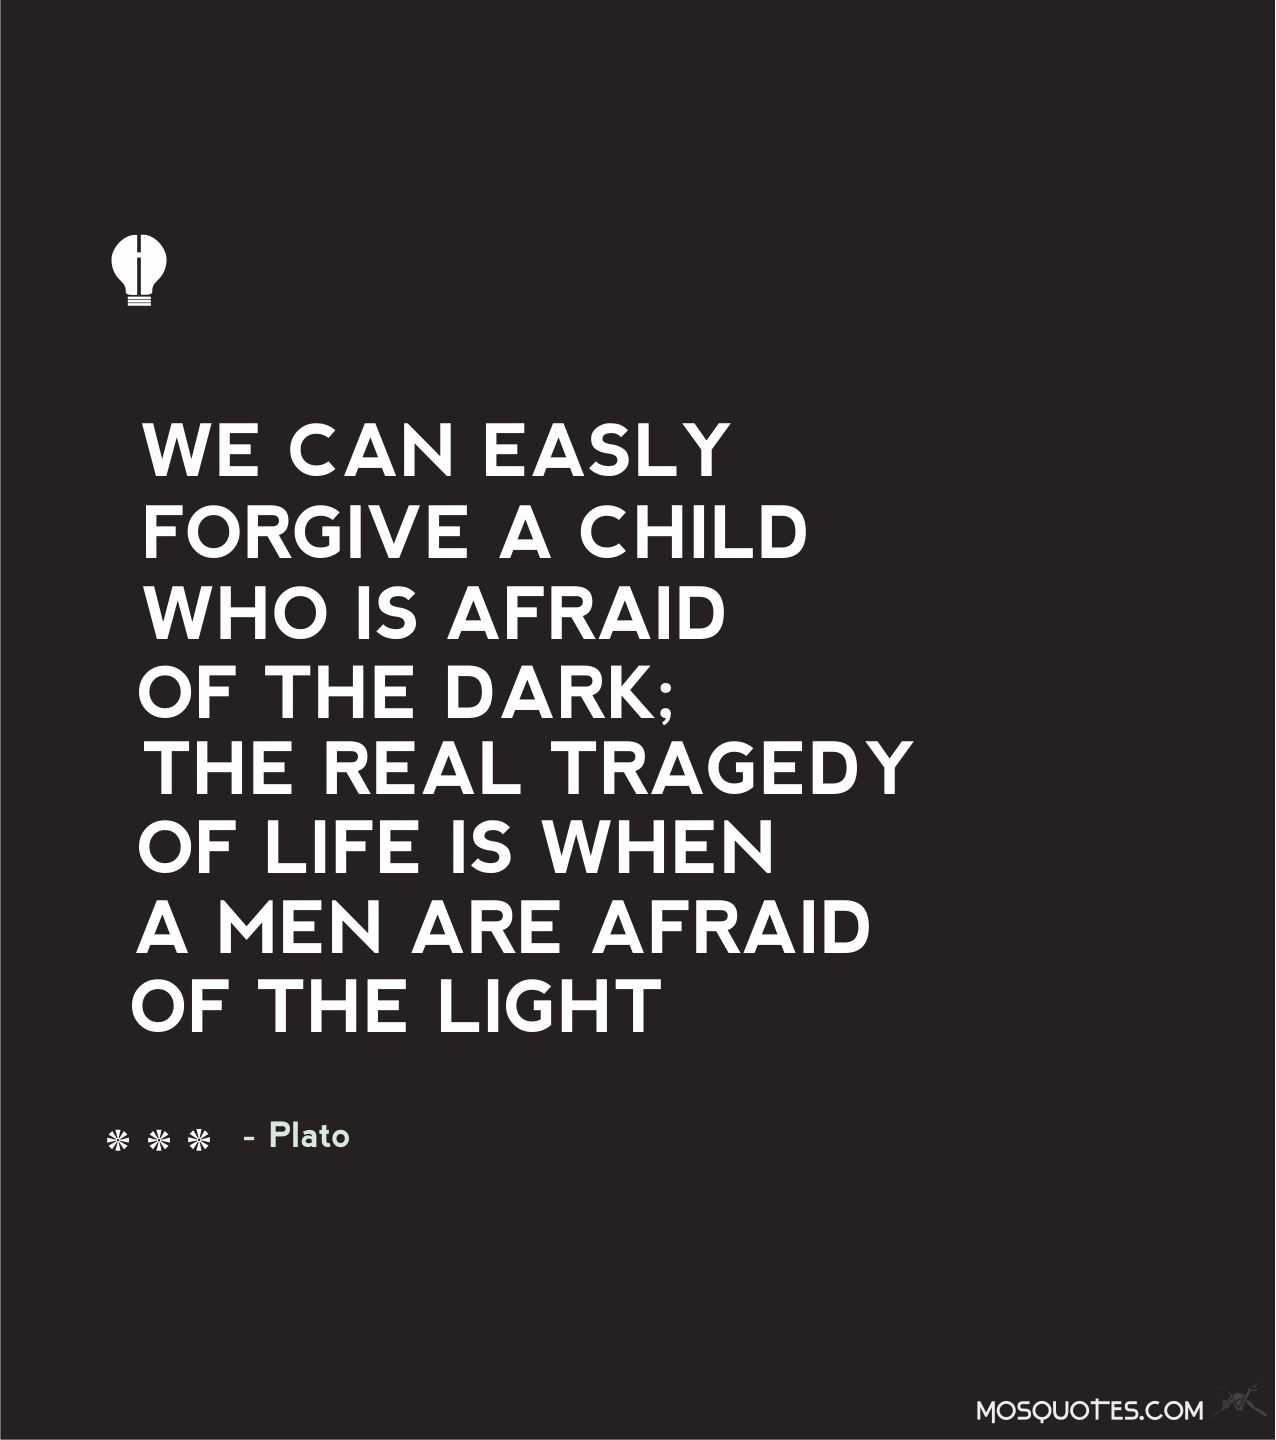 Quotes Of: Light Of Life Quotes. QuotesGram